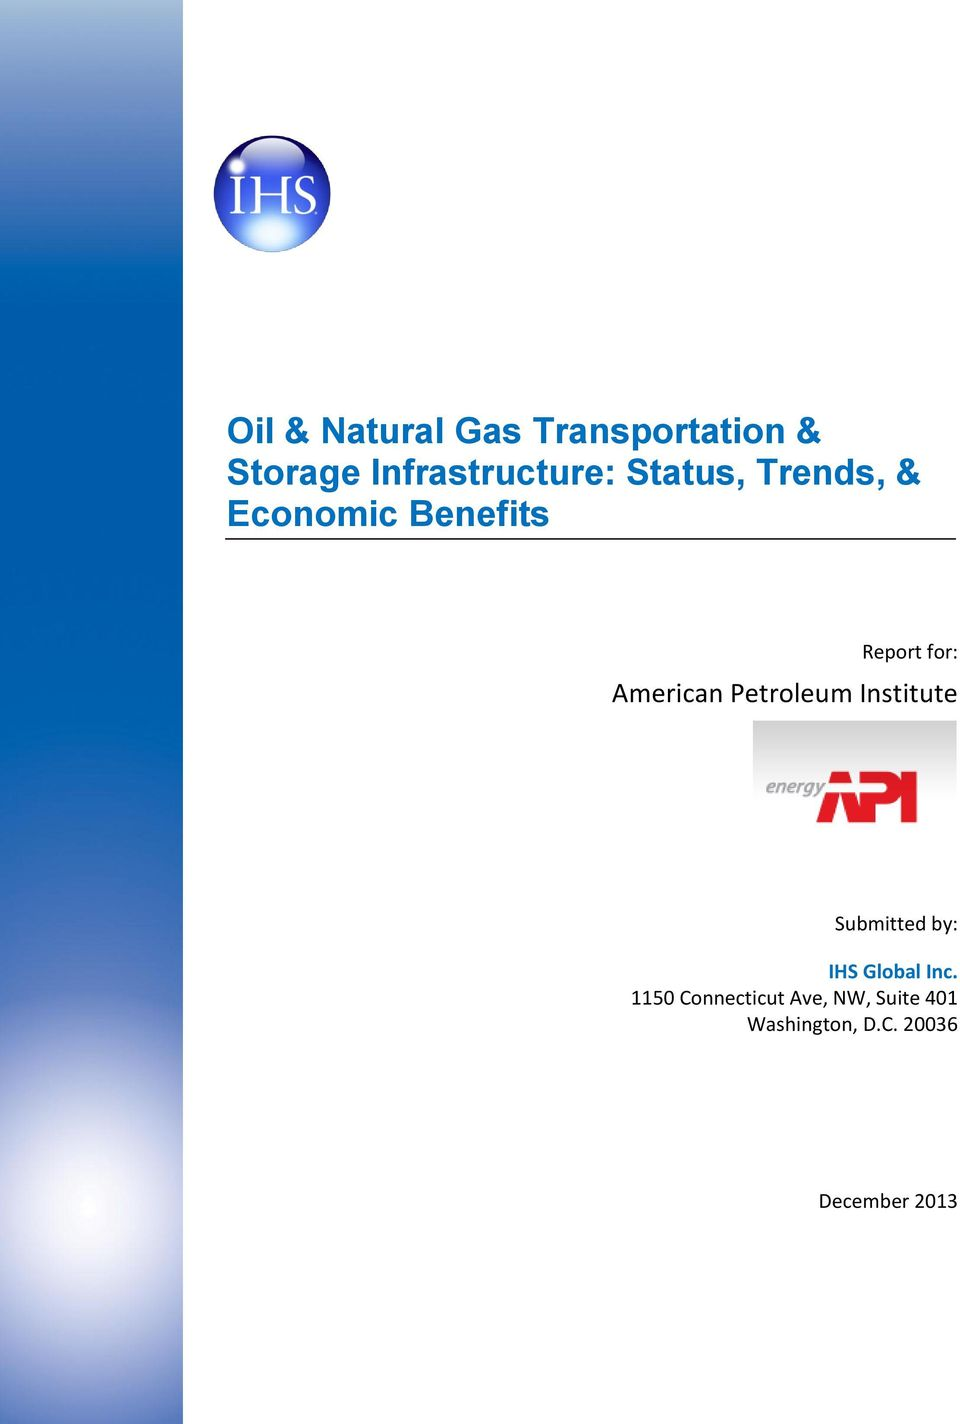 Petroleum Institute Submitted by: IHS Global Inc.